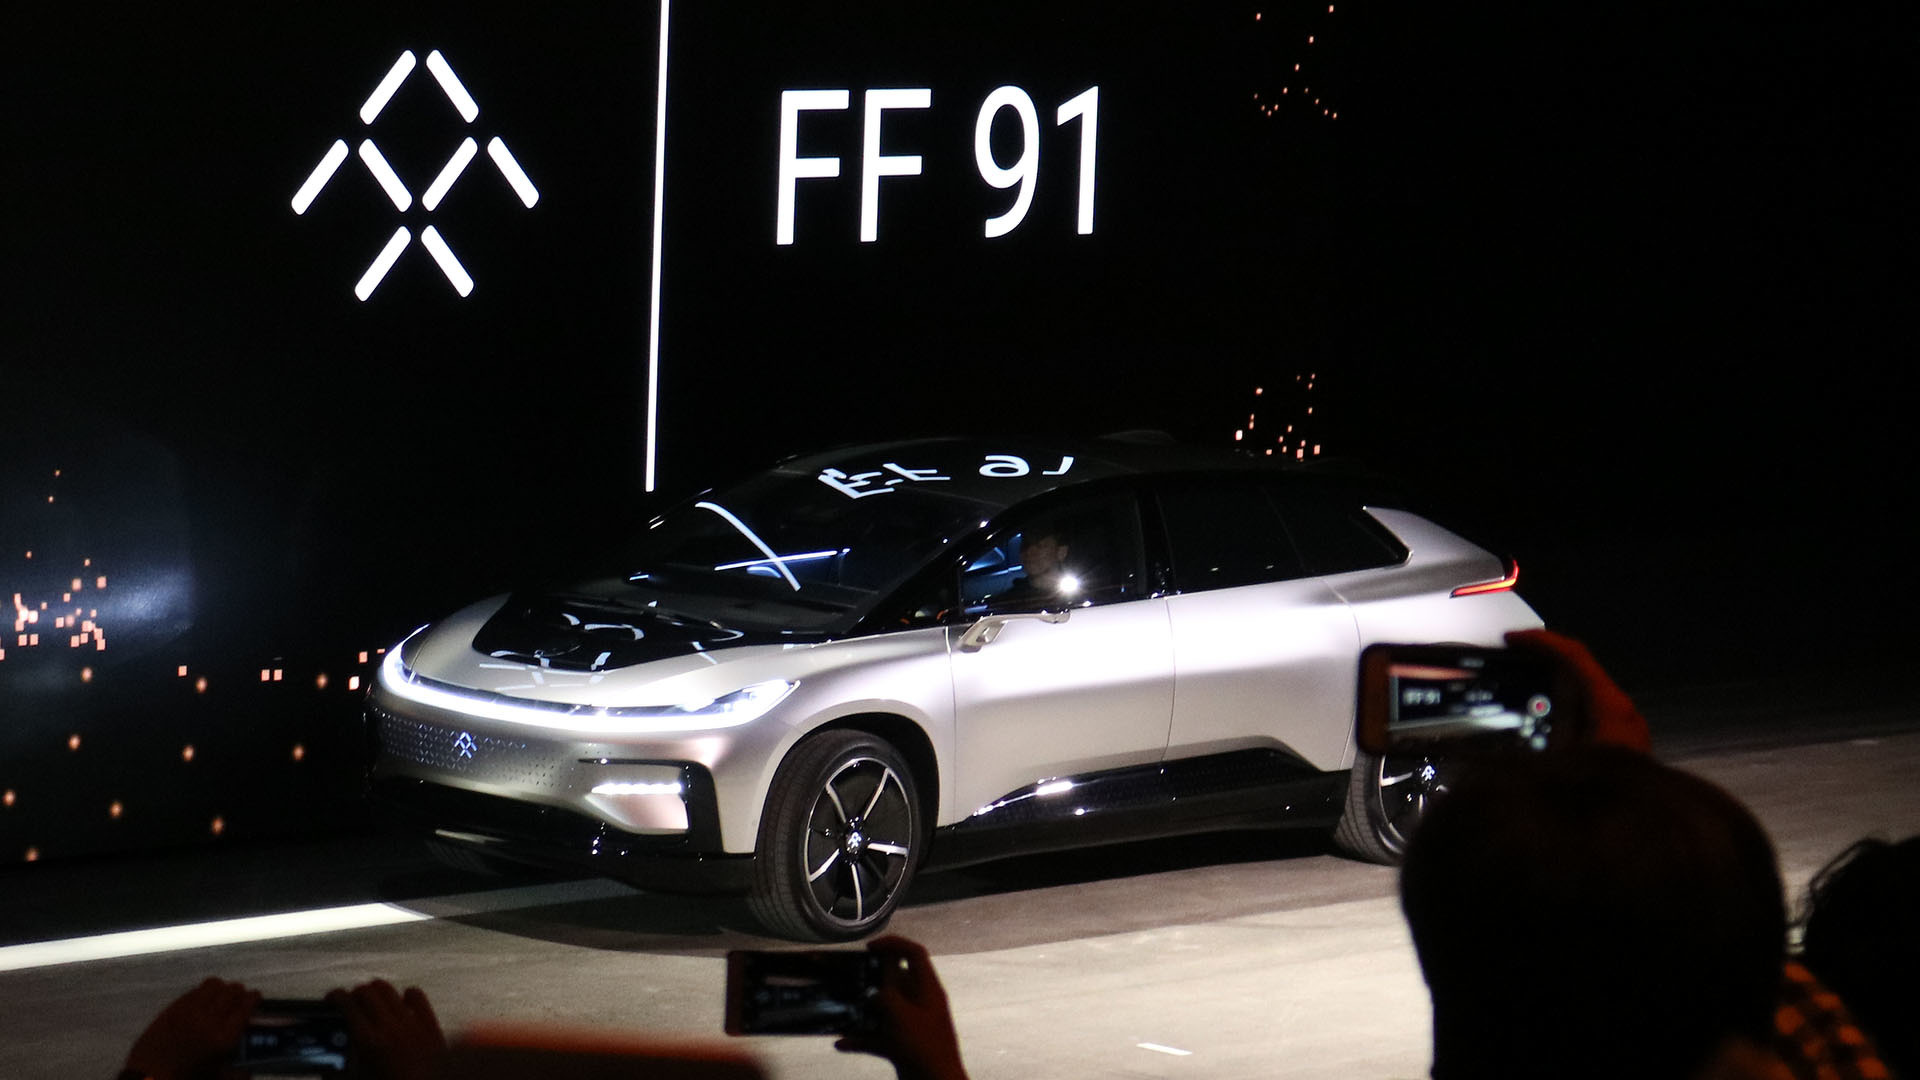 Faraday Future Ff 91 Goofs At Self Parking During Debut